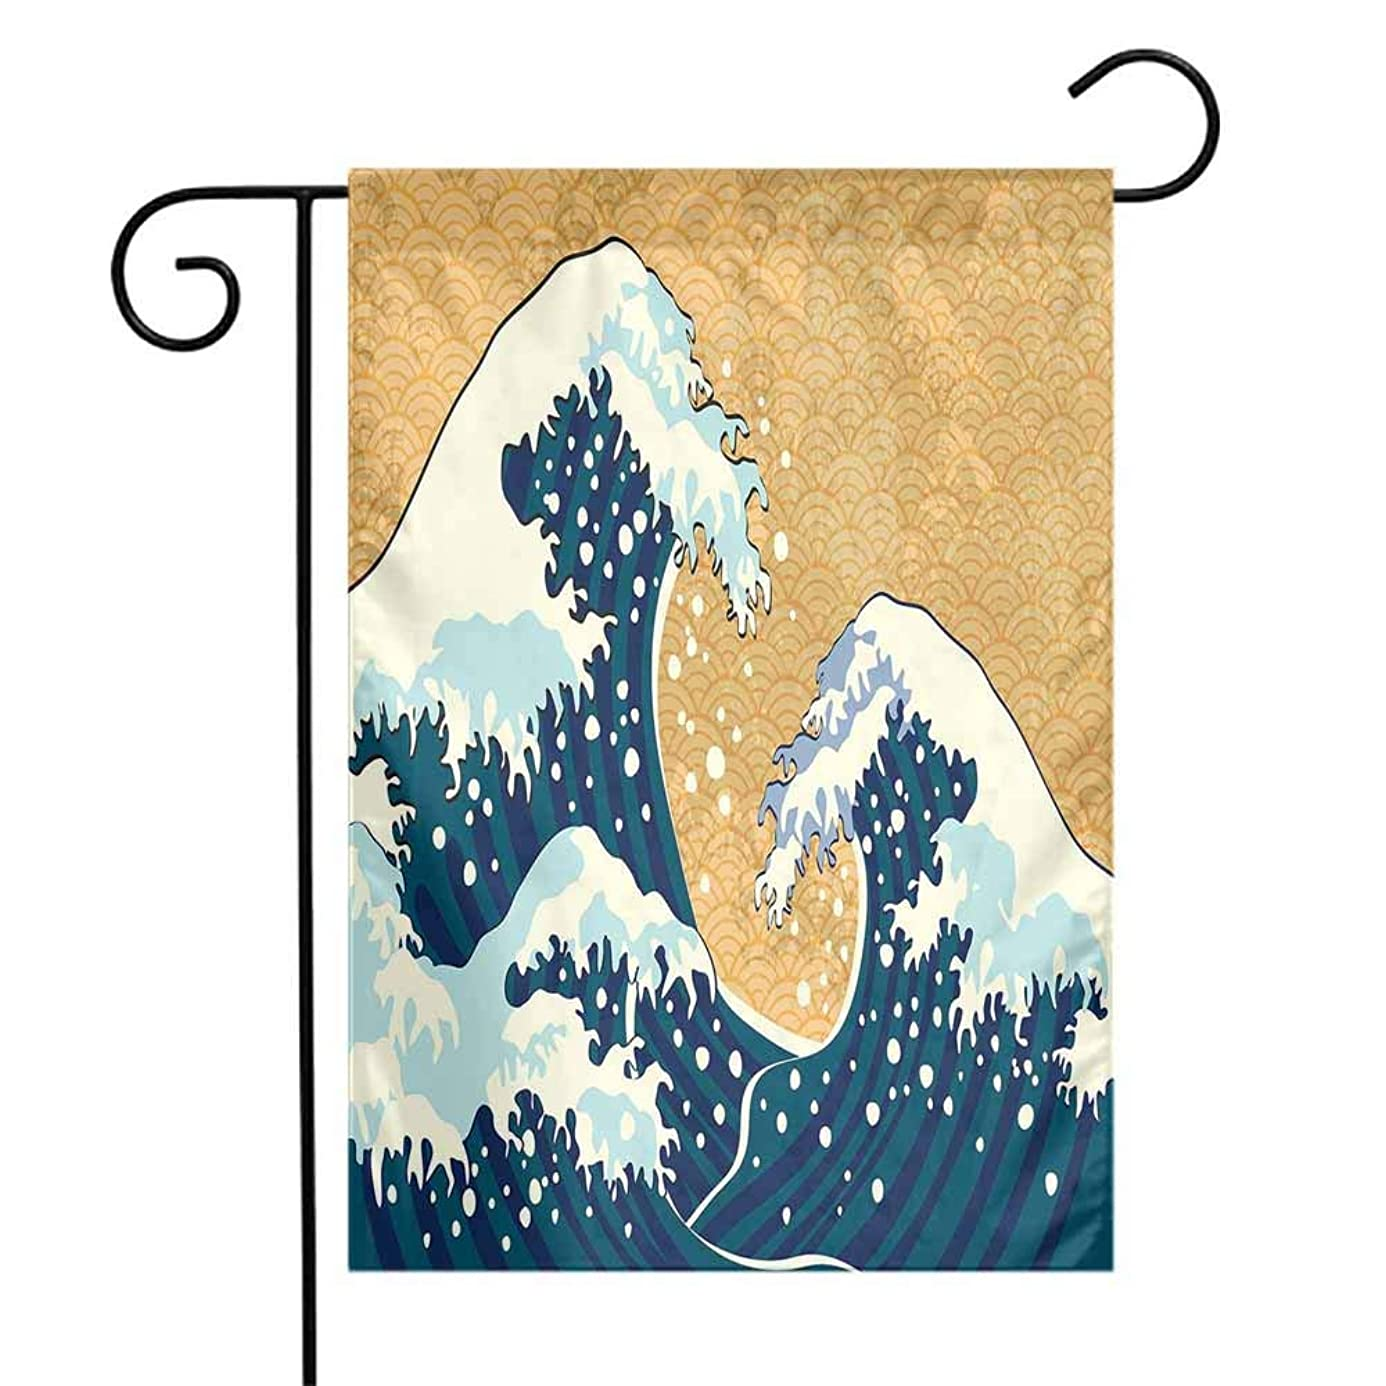 Mannwarehouse Japanese Wave Garden Flag Sea Storm in Japan Traditional Drawing Foamy Great Waves Premium Material W12 x L18 Earth Yellow Dark Blue White dek4713509